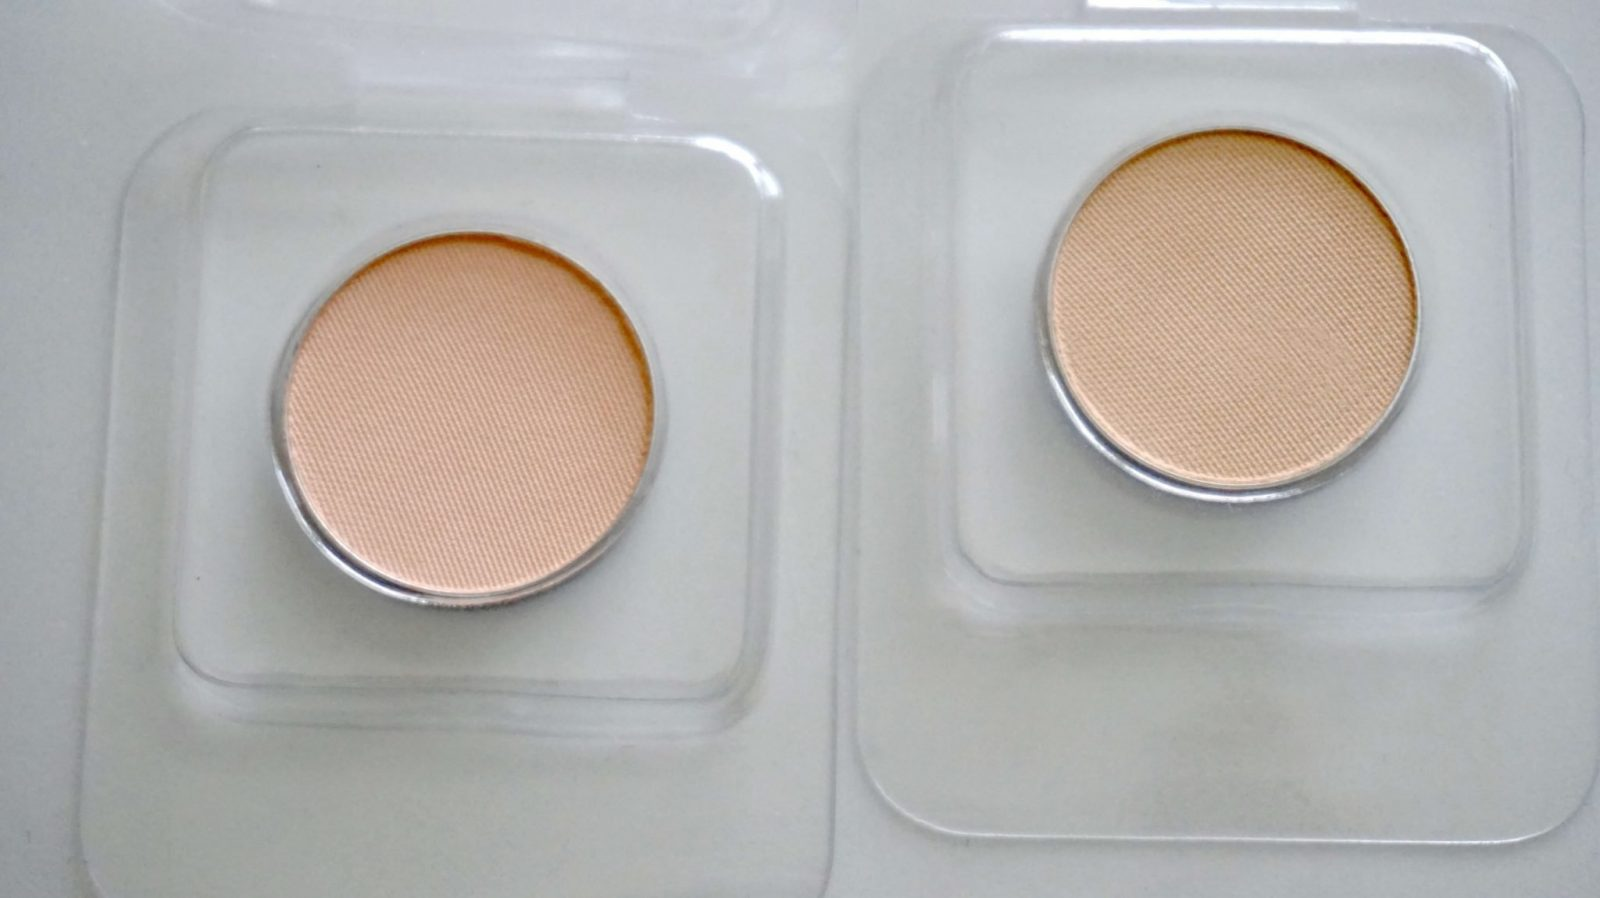 Peachsicle and Peach Vanilla eye shadows